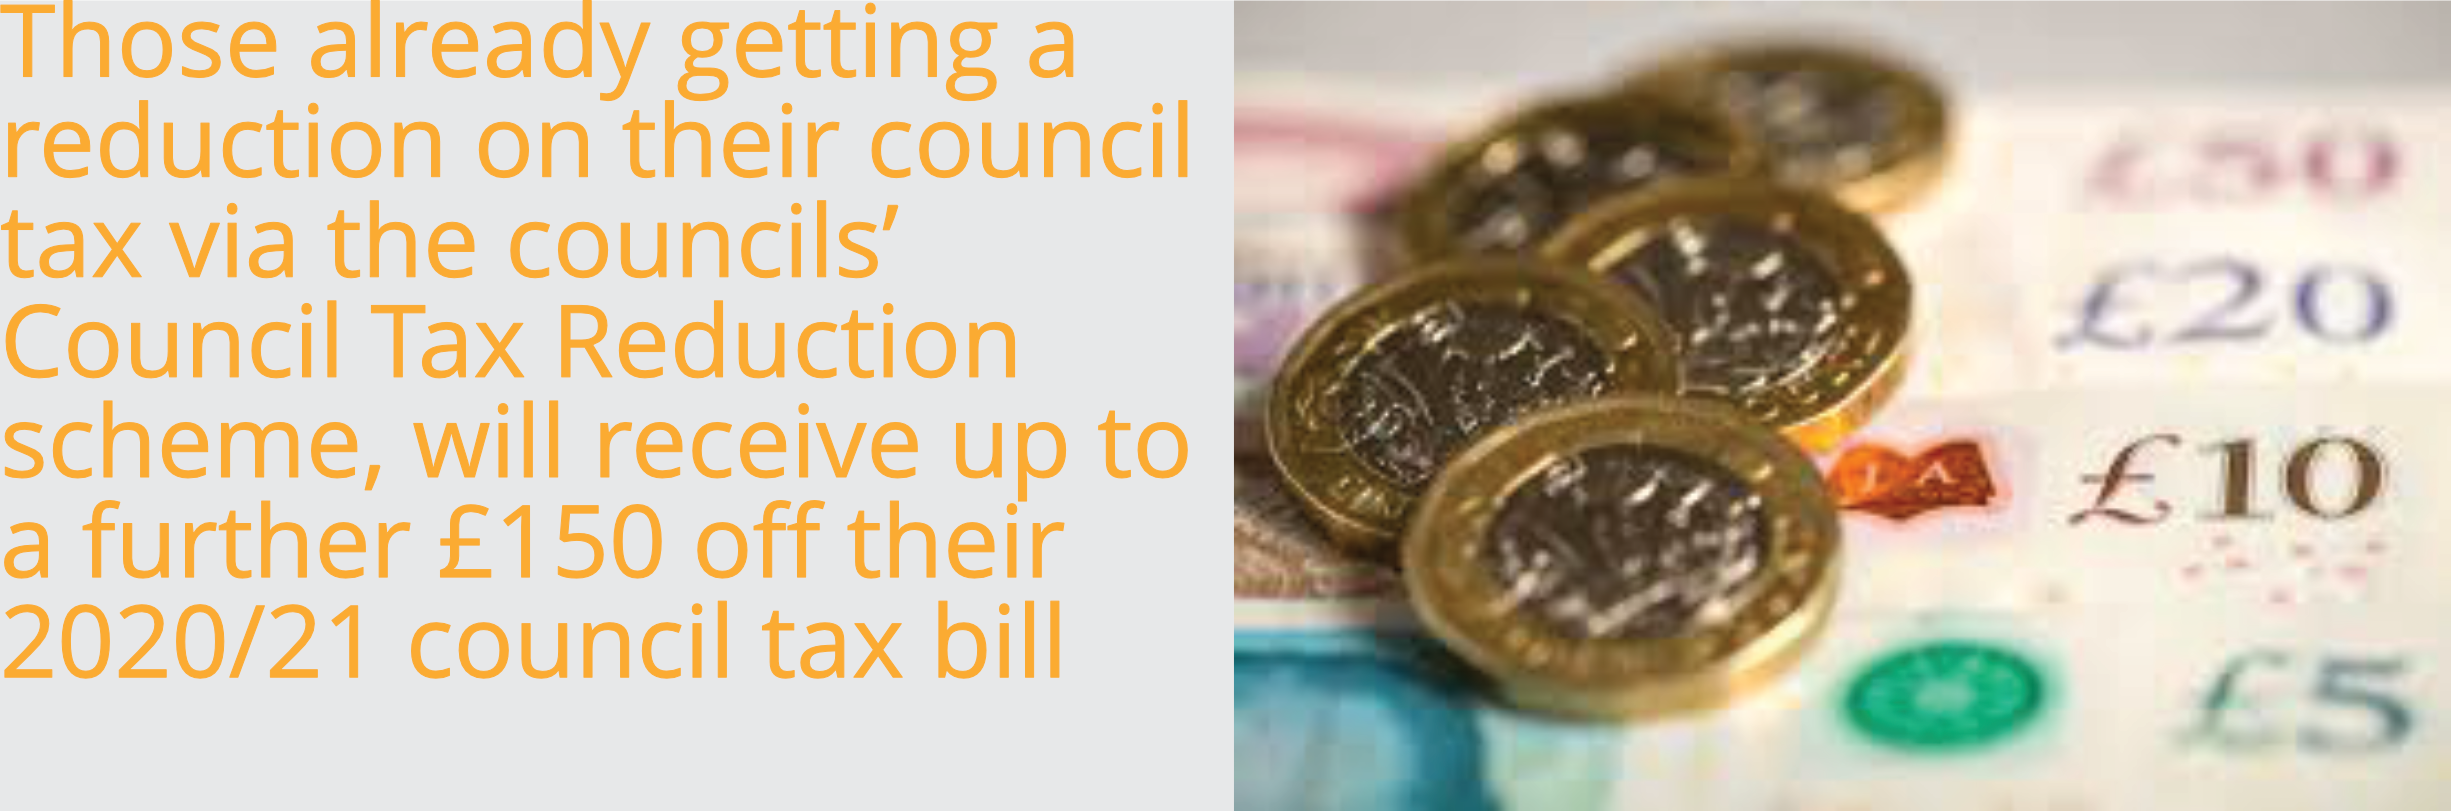 Those receiving a reduction on their council tax via the councils' Council Tax Reduction scheme, will receive up to a further £150 off their 2020/21 council tax bill